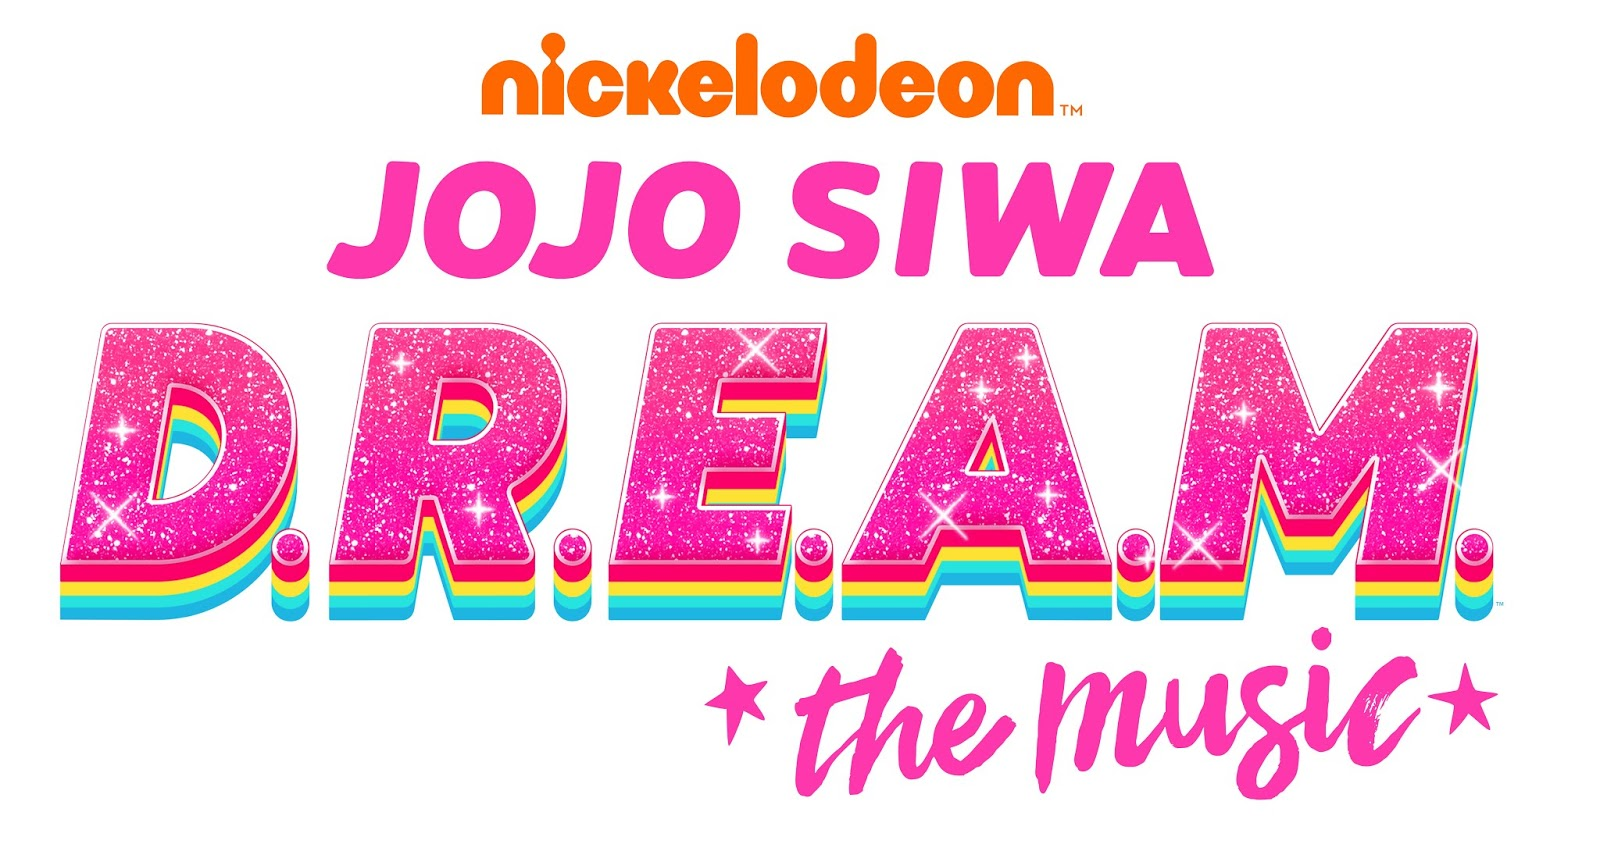 3a3ded0e9547a NickALive!: Nickelodeon Superstar JoJo Siwa Announces First-Ever ...